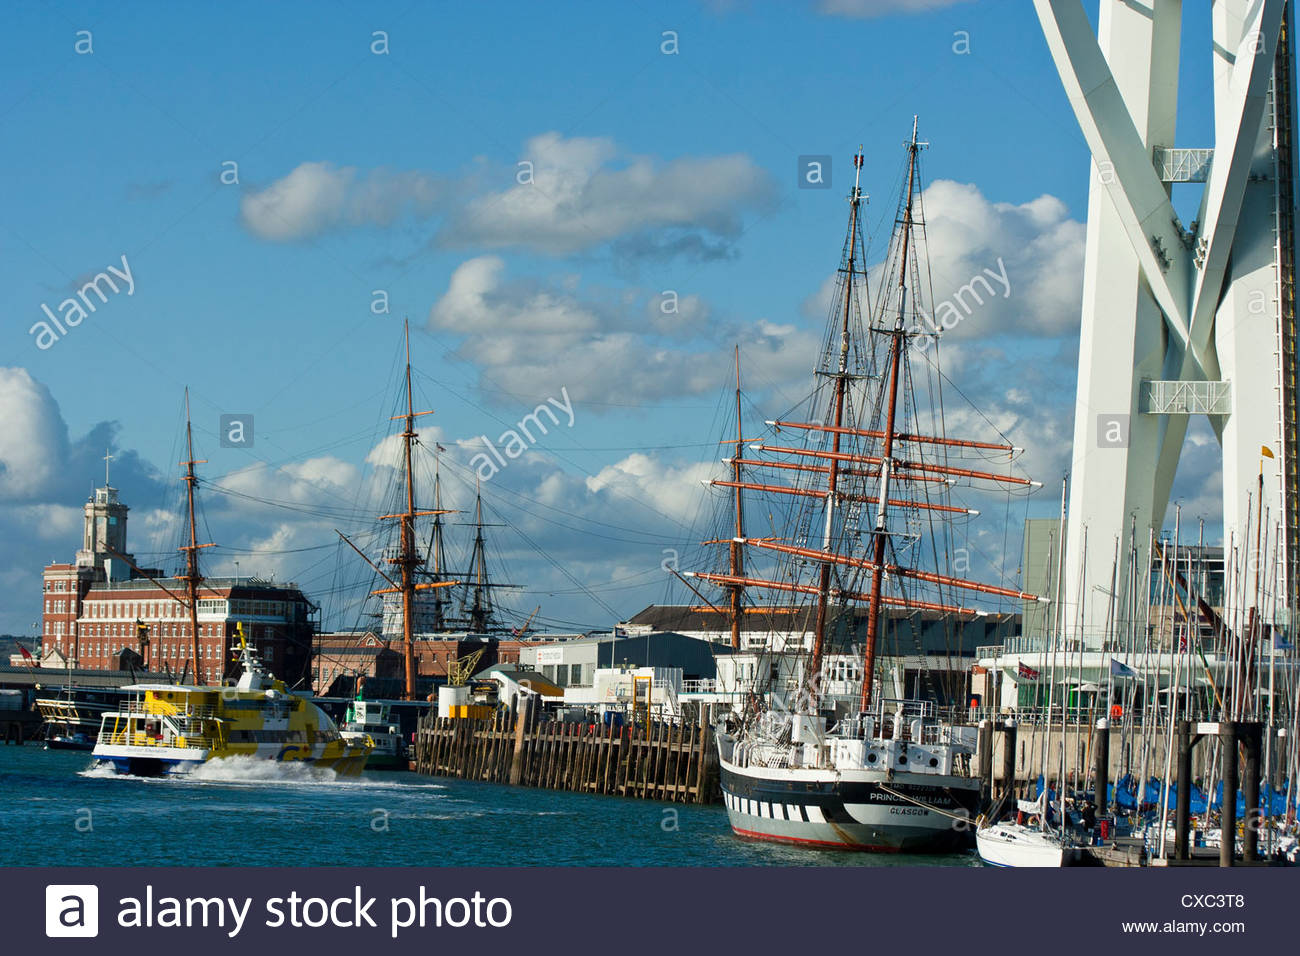 Portsmouth Hampshire England Harbour Sailing Ships Masts Busy - Stock Image